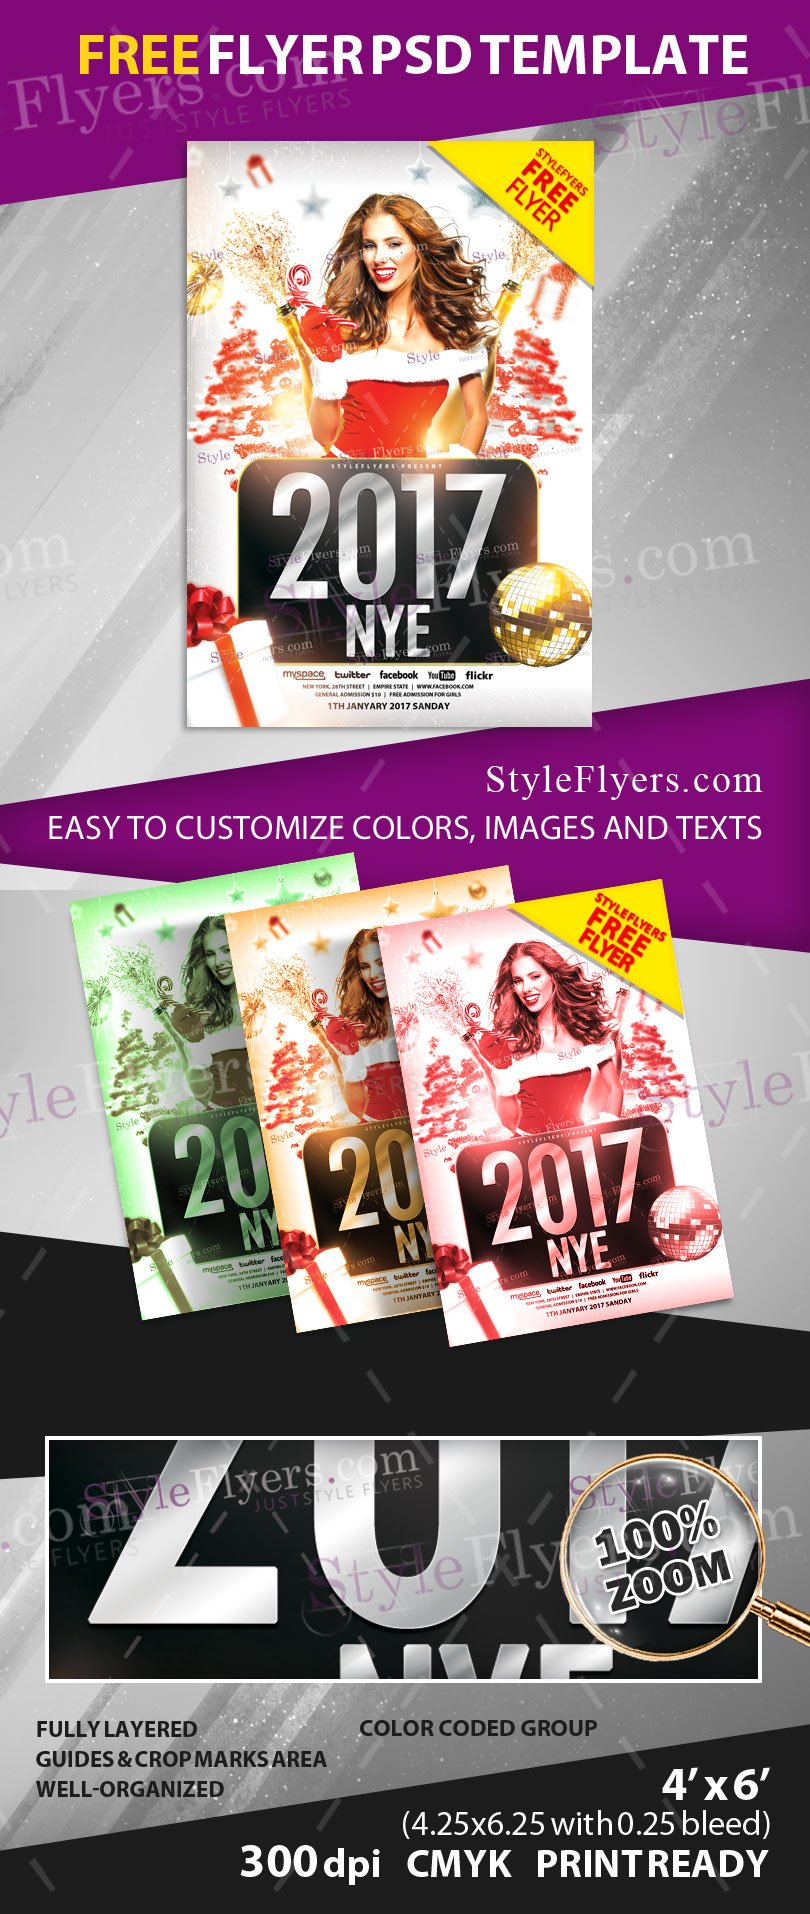 2017 new psd flyer template 13759 styleflyers luxury flyer for your new year is done this time we think of those clients who just want to start our cooperating and about our loyal client who wants to